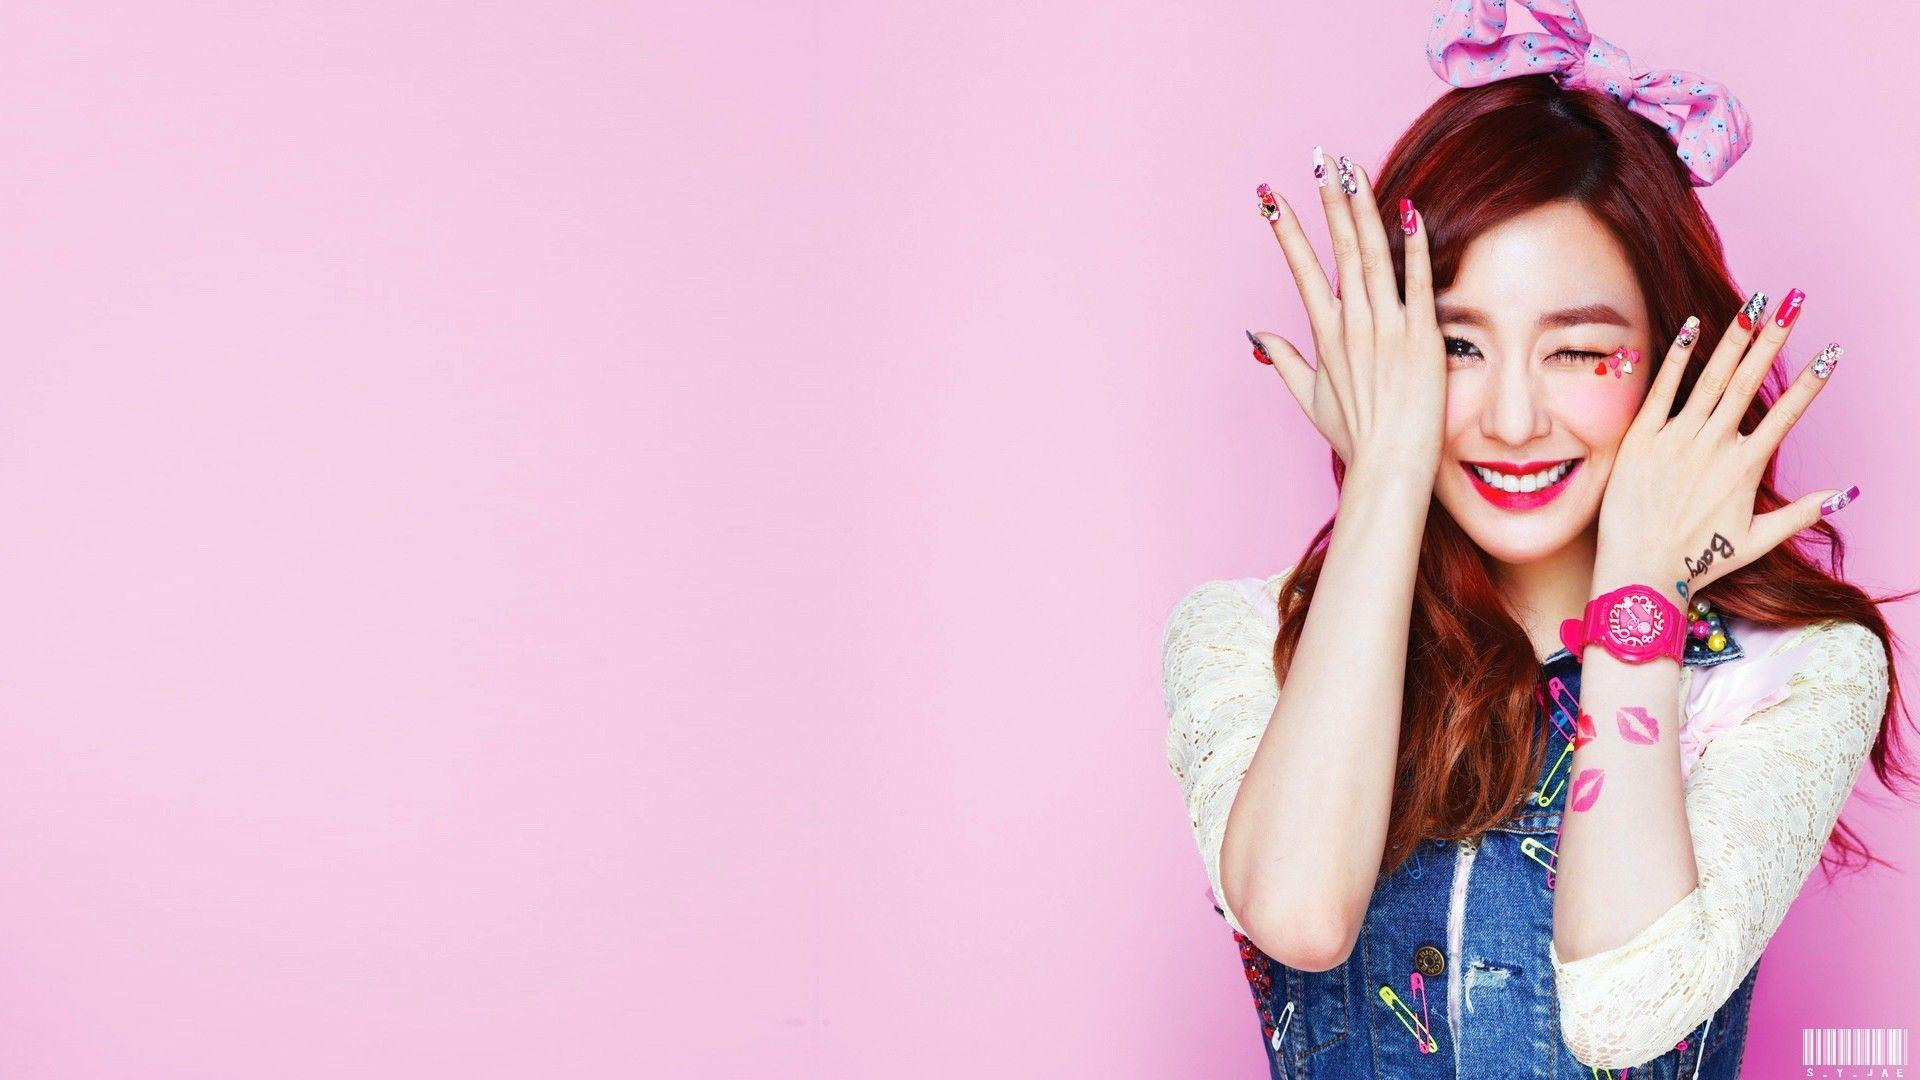 Tiffany Snsd Wallpapers